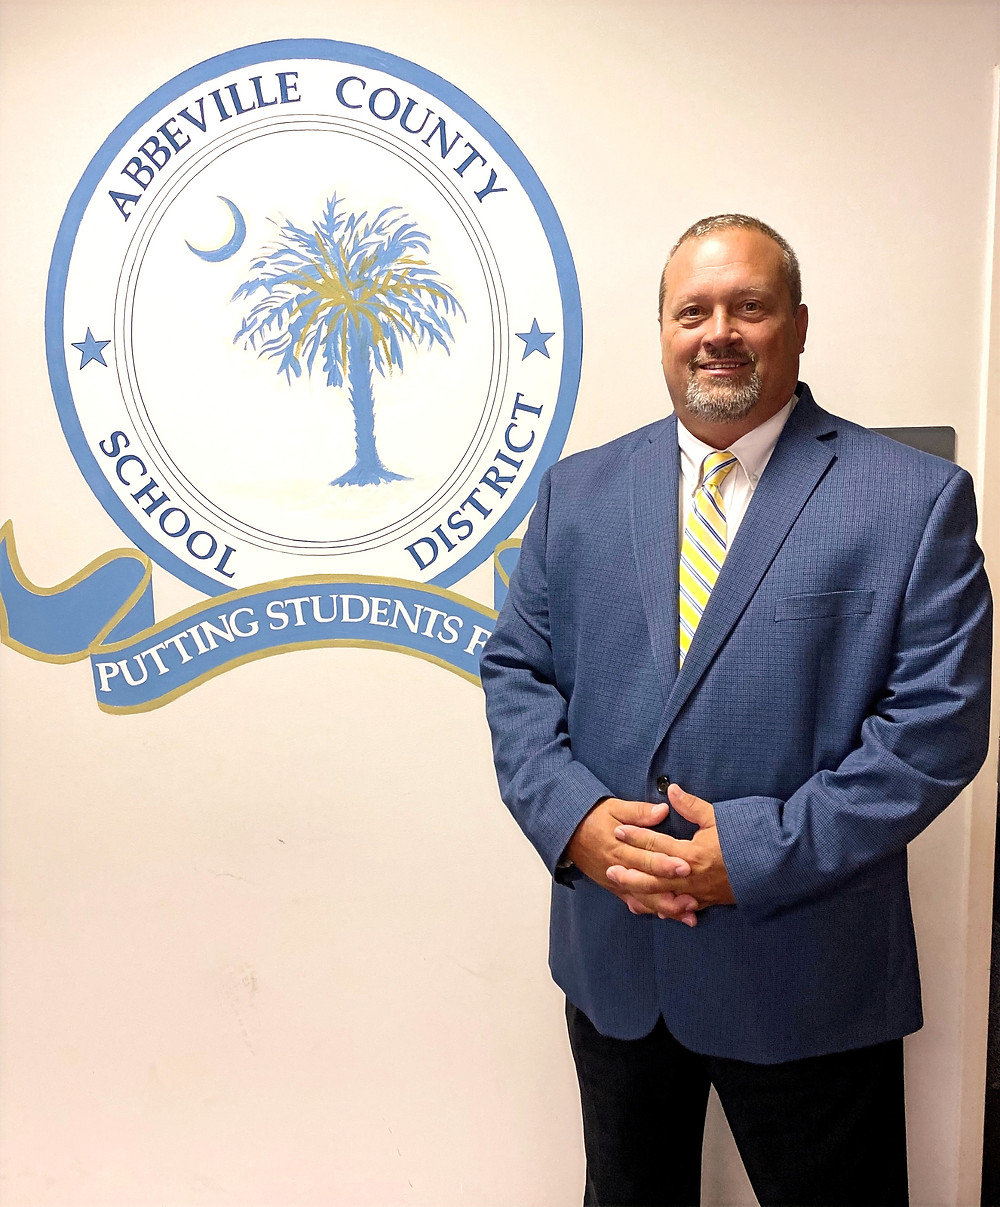 Dr. Charles Mason Gary is the new interim superintendent for the Abbeville County School District